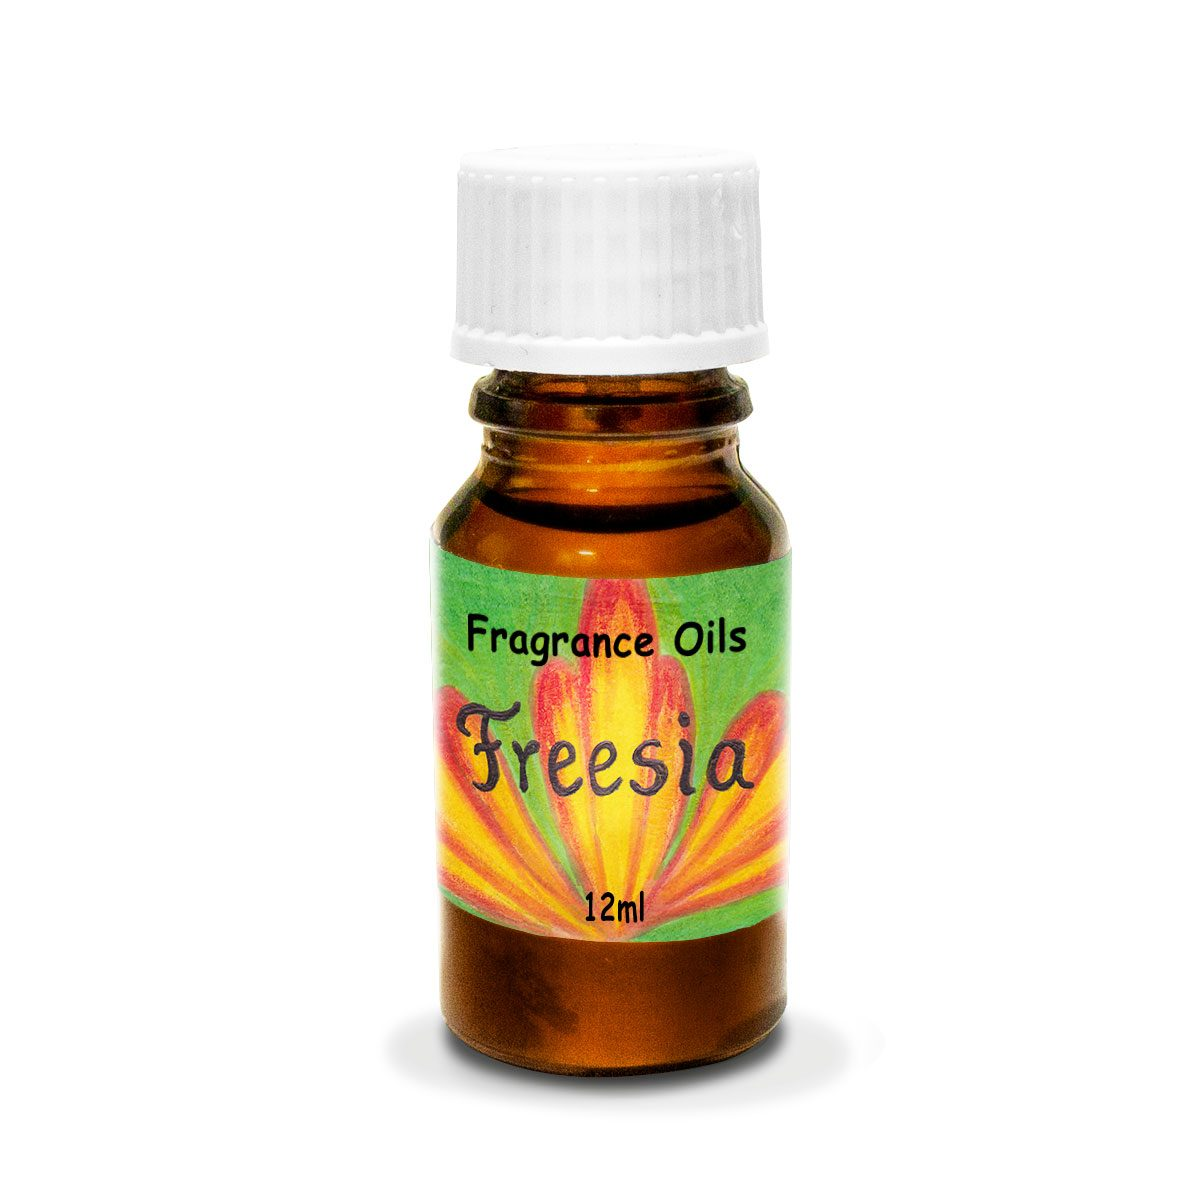 Freesia - Fragrance Oil